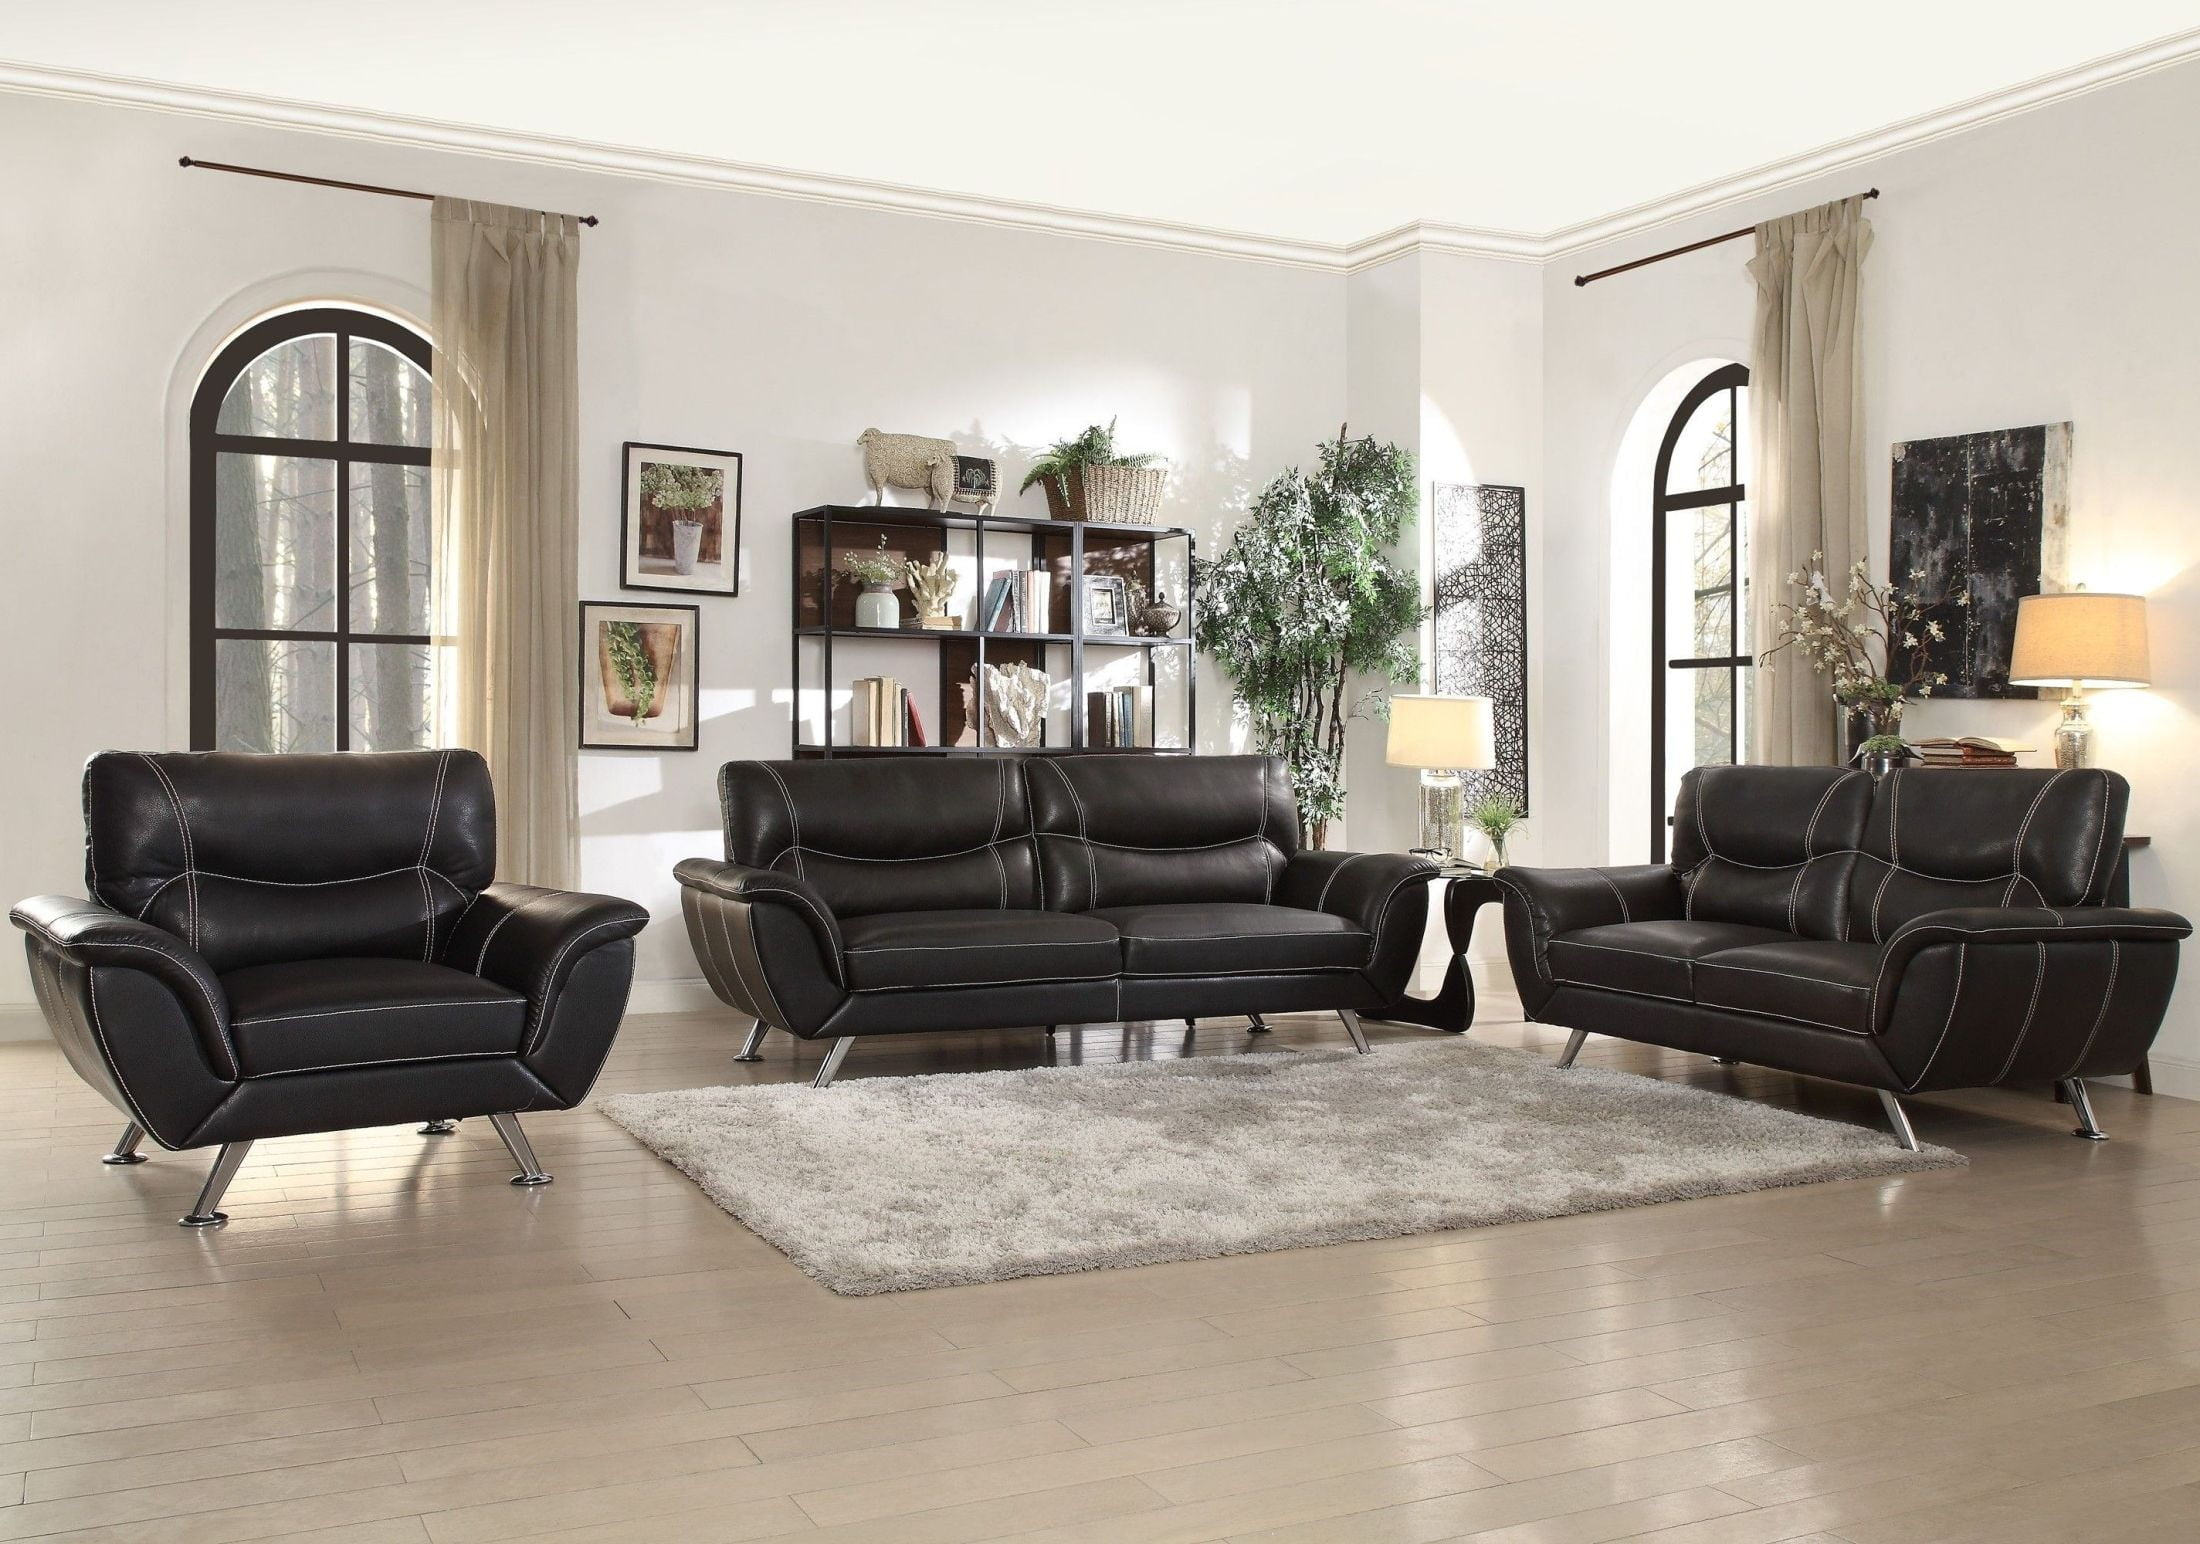 sofa leather product colors coaster room living state b products silver set black sets samuel color